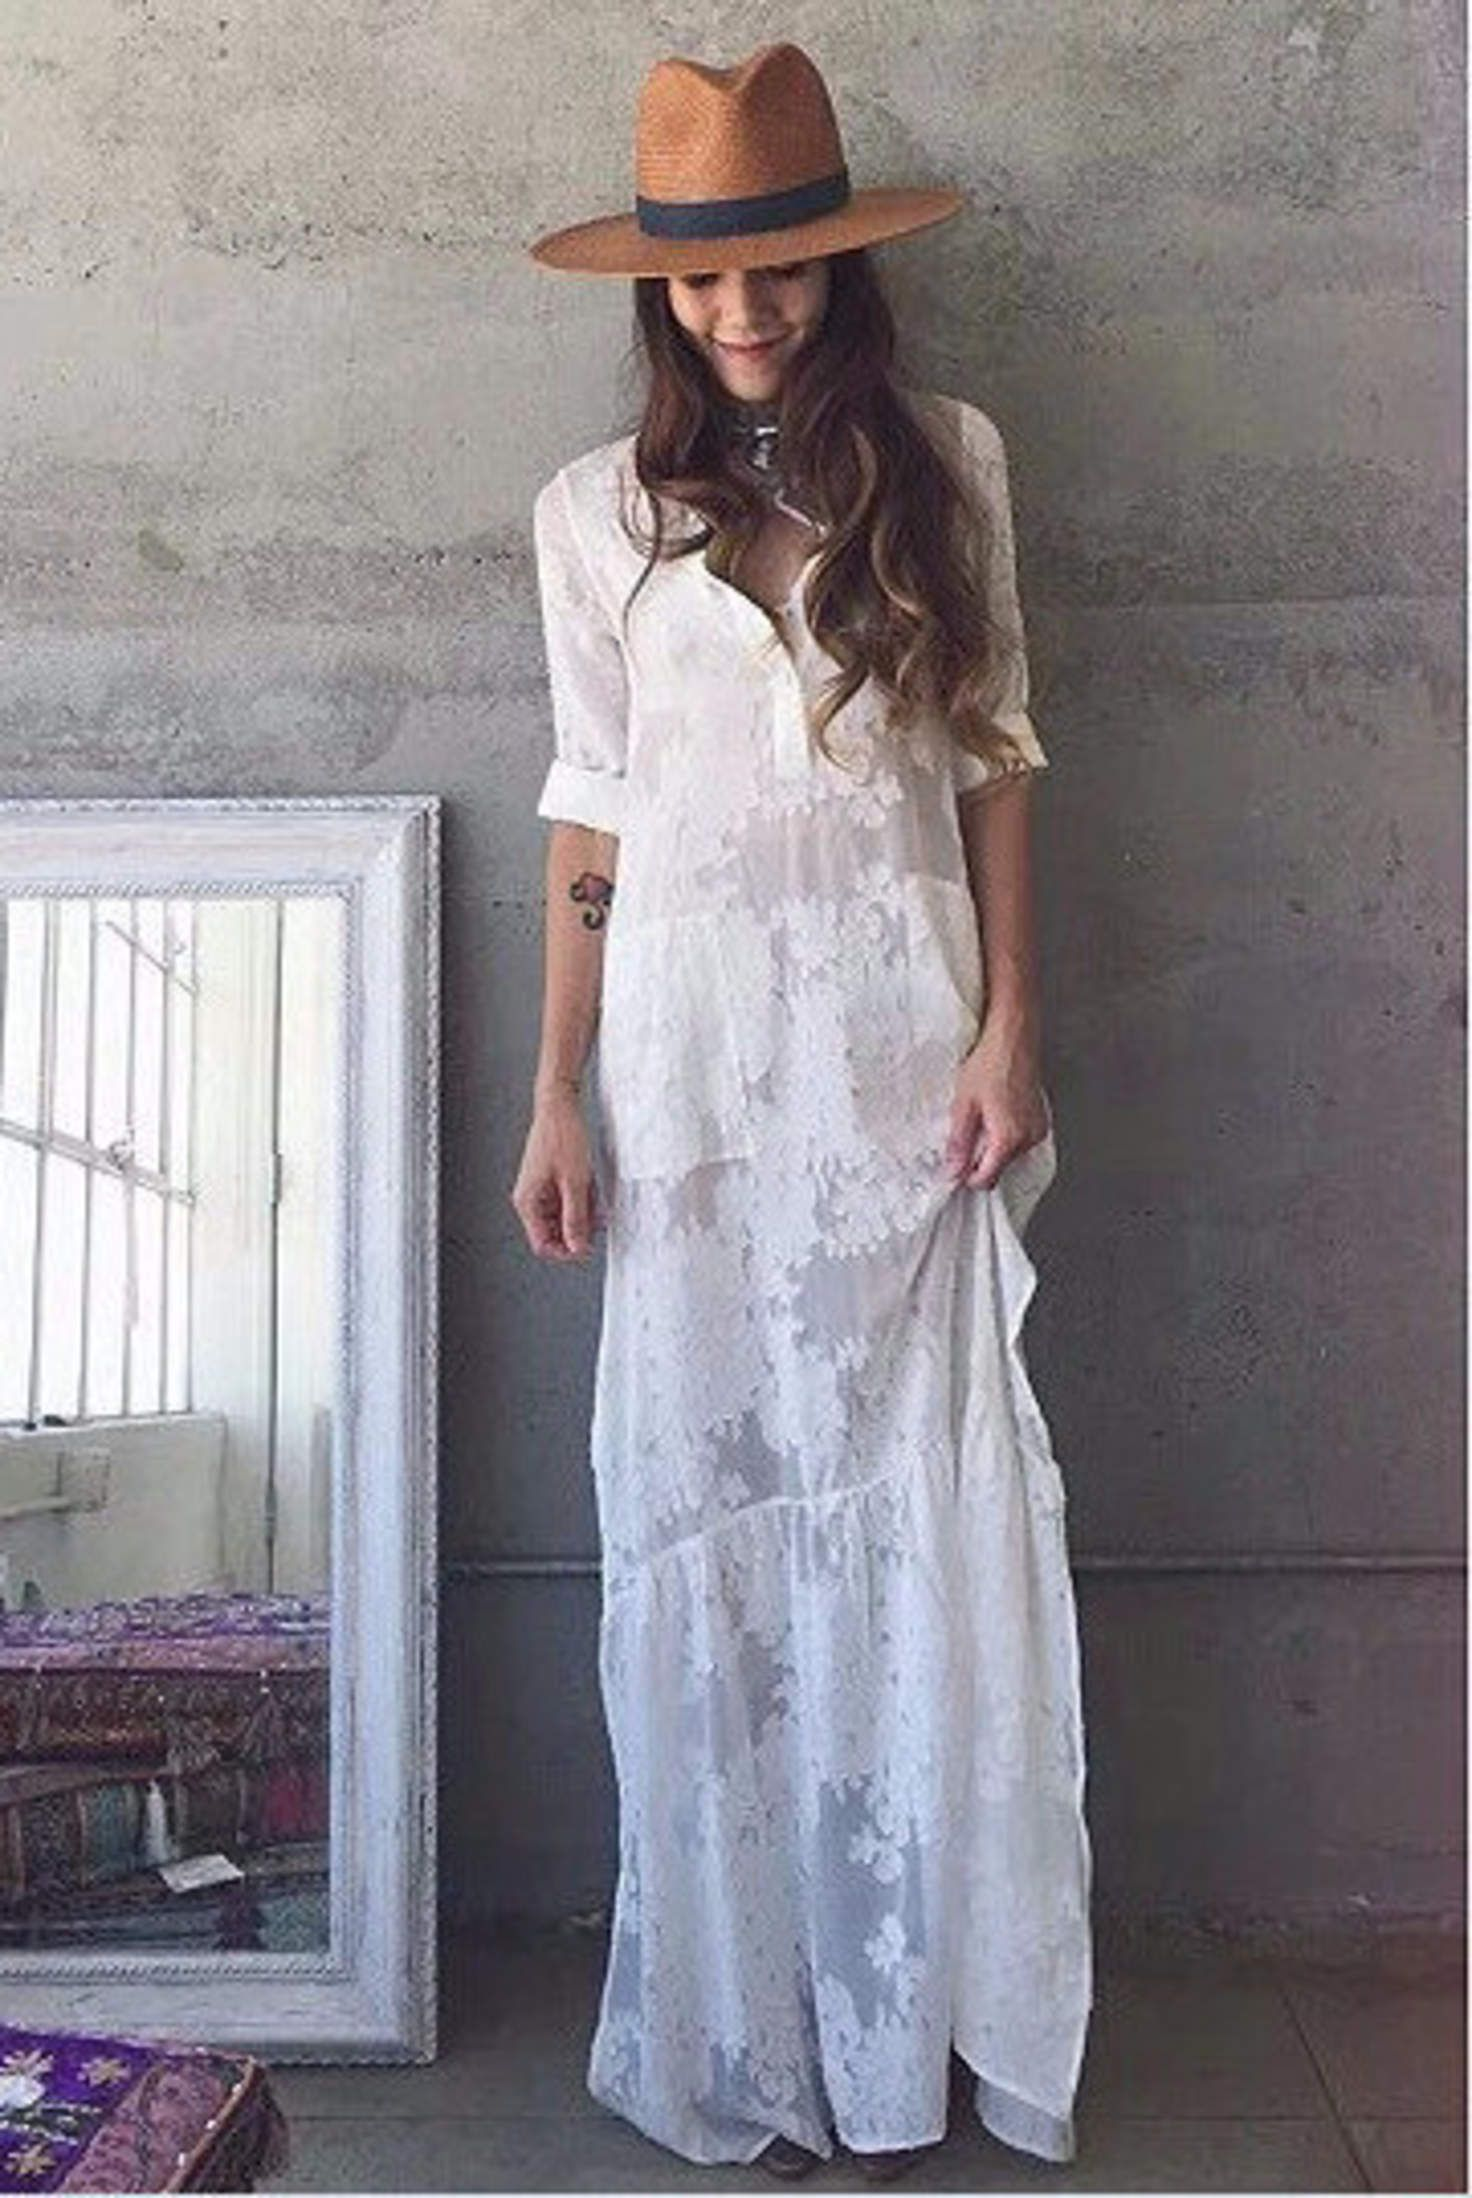 f4bc72959a7d BOHO Slit Side Lace White Chiffon Maxi Dress Lapel Long Sleeve Beach Dress